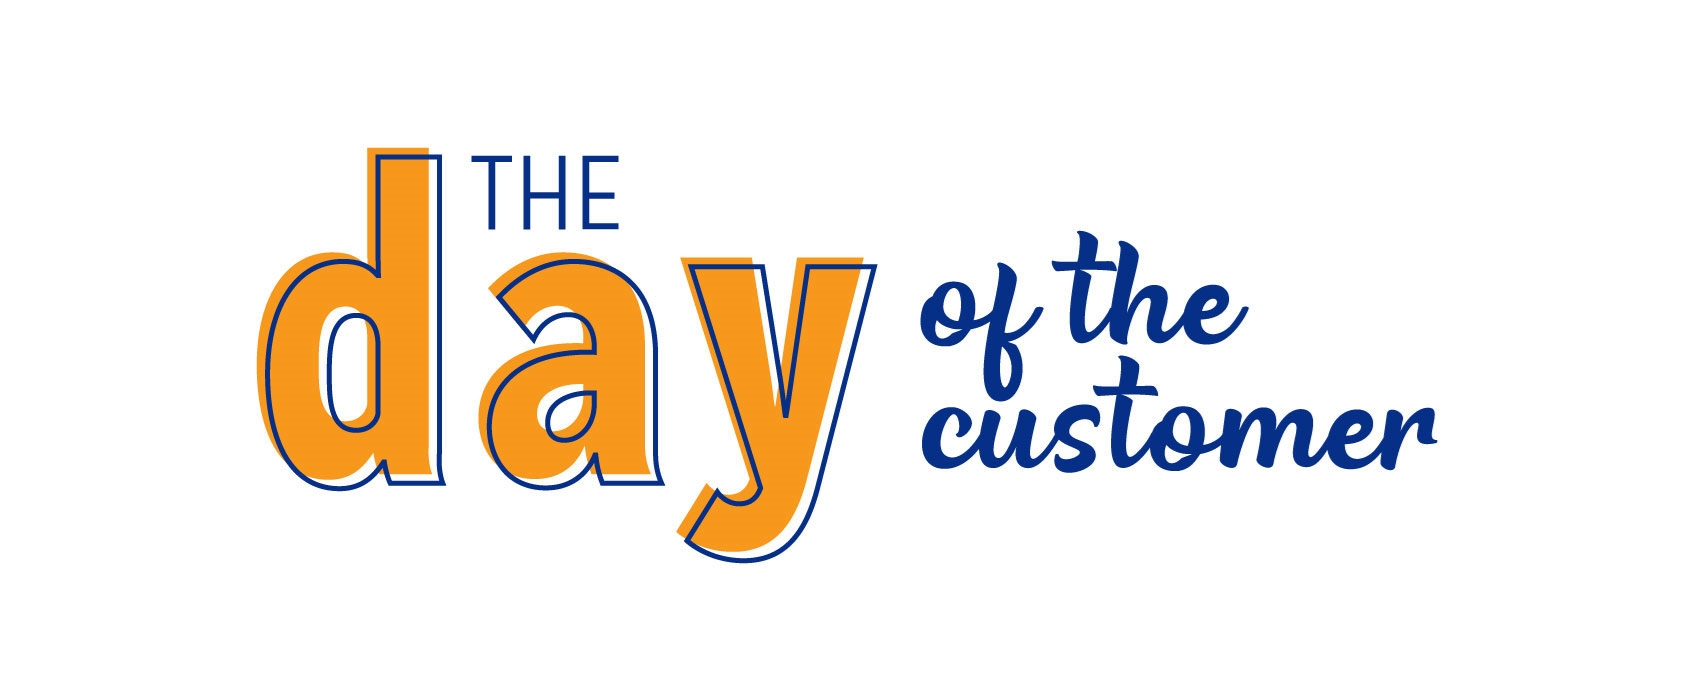 the day of the customer